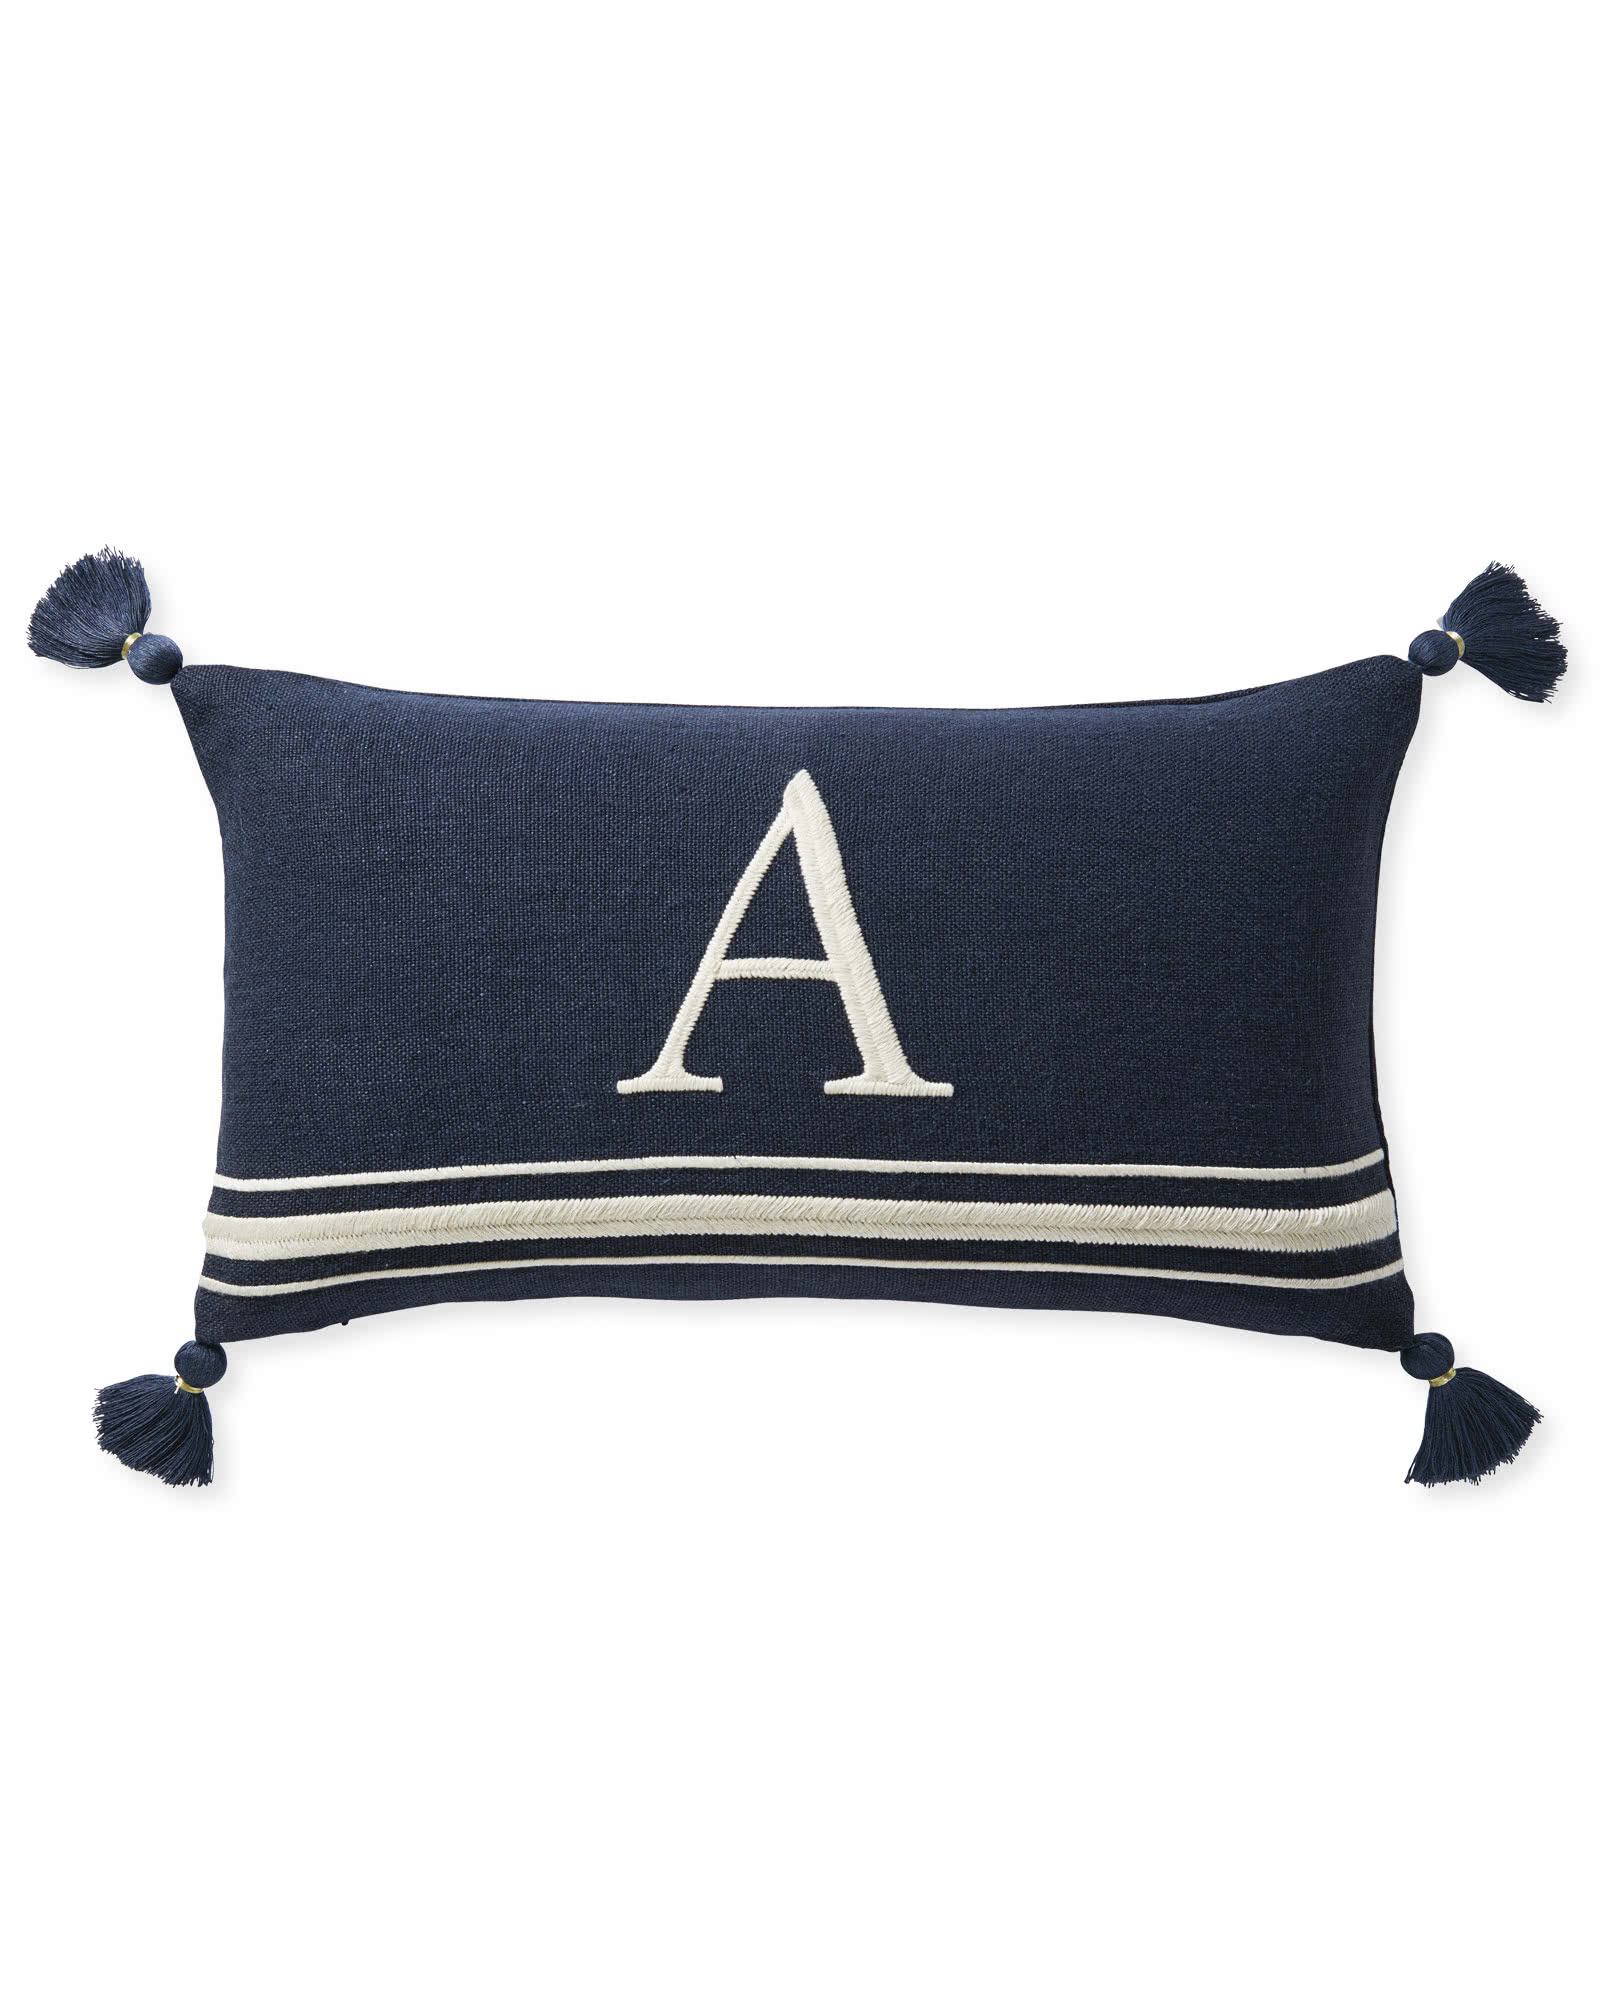 Embroidered Letter Pillow Cover,